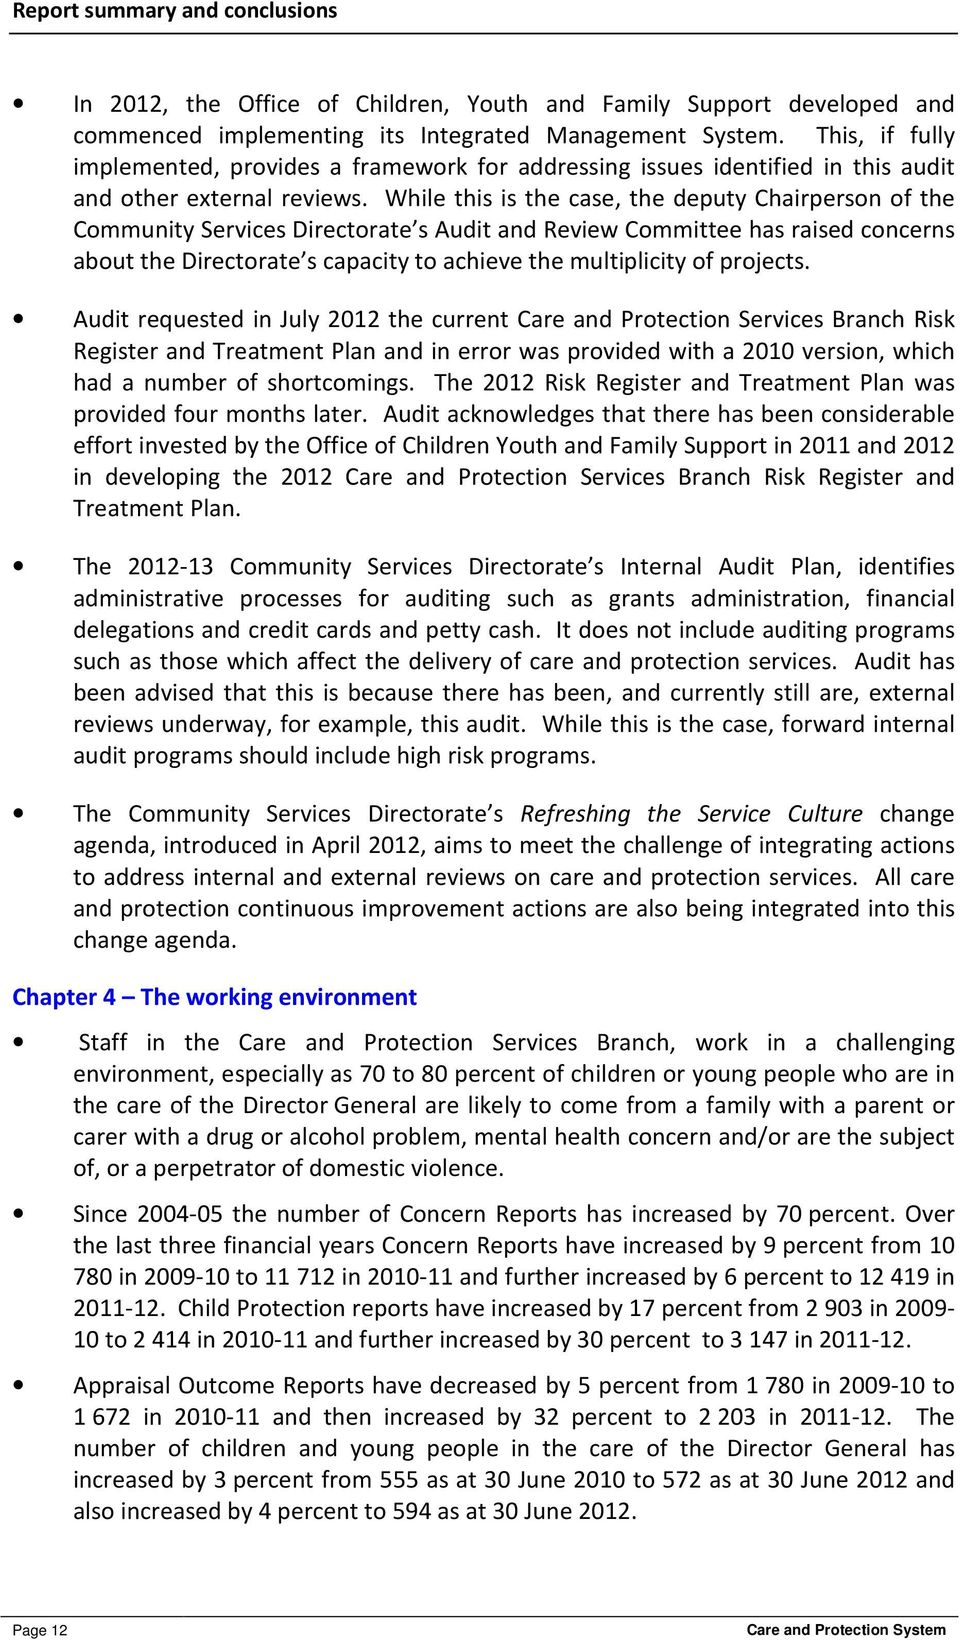 While this is the case, the deputy Chairperson of the Community Services Directorate s Audit and Review Committee has raised concerns about the Directorate s capacity to achieve the multiplicity of